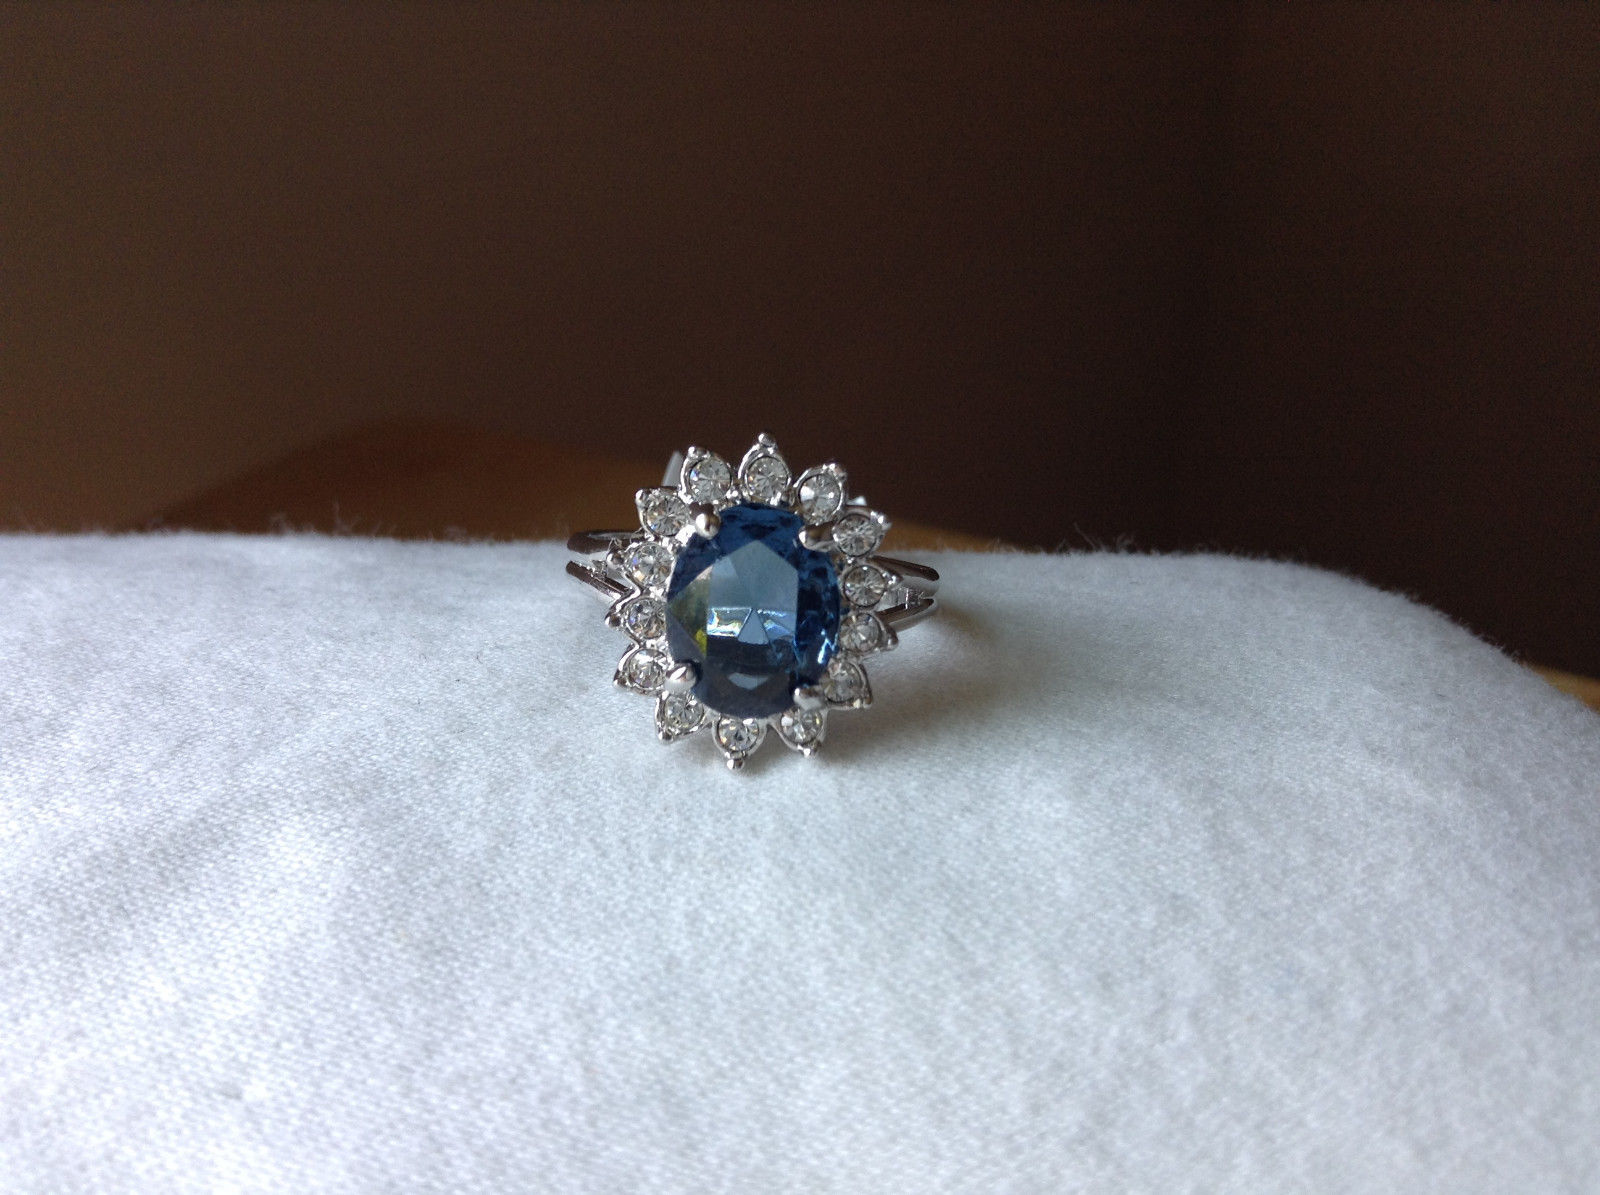 Blue CZ Stone Sunburst White Stone Border Stainless Steel Ring Size 7 and 7.75